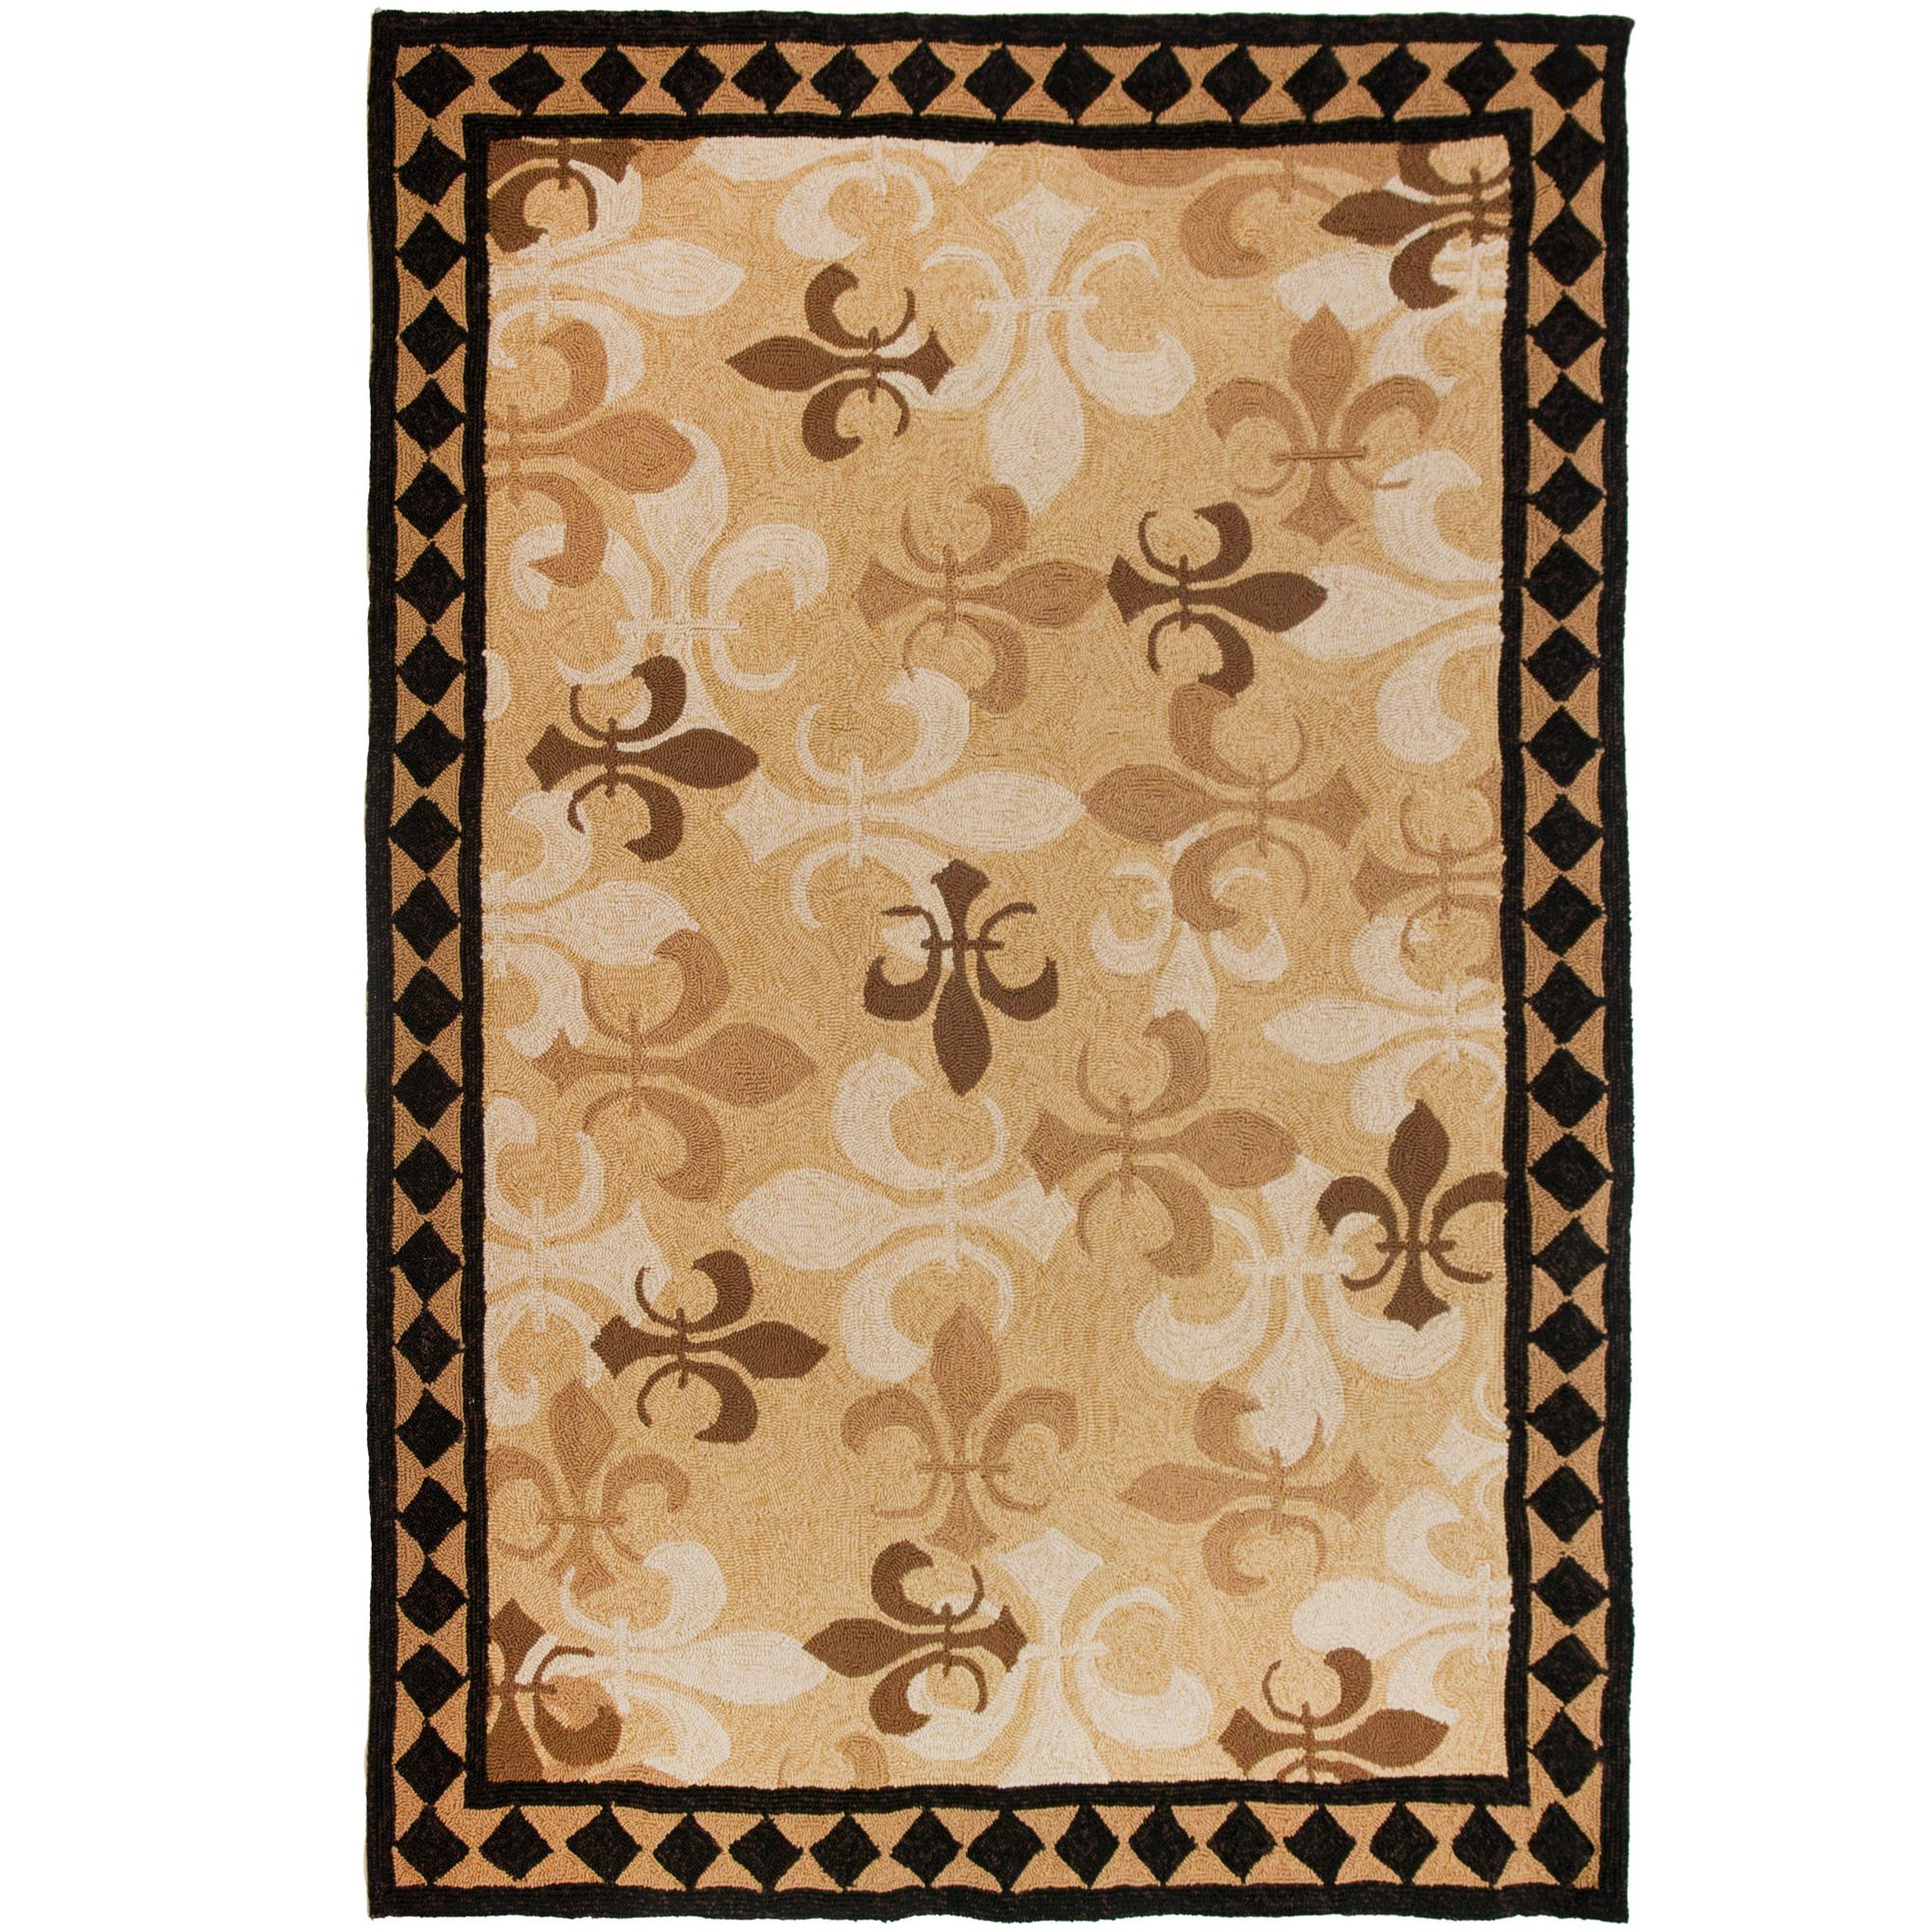 Area Rugs Stockings Christmas Gold Bathroom Accessories Nice. Fleur De Lis  ...